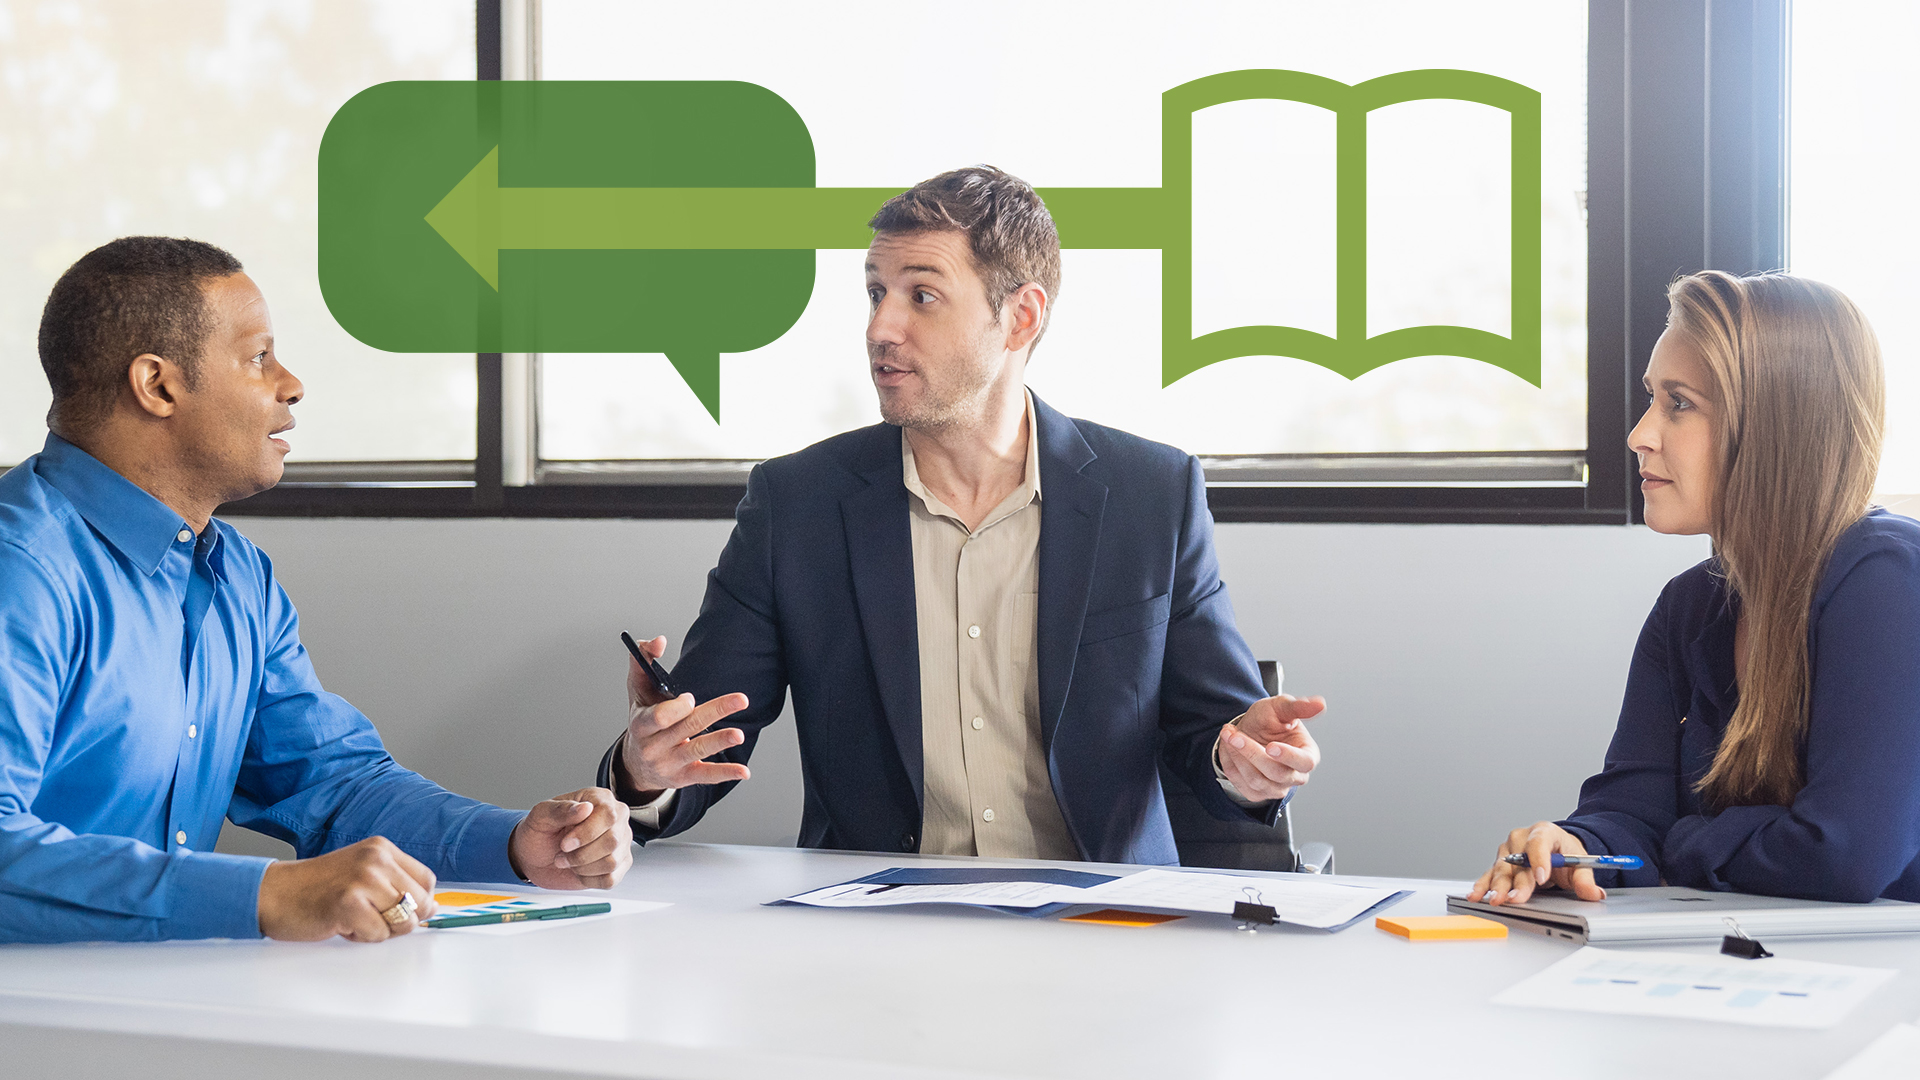 Addressing leadership with story: Leading with Stories